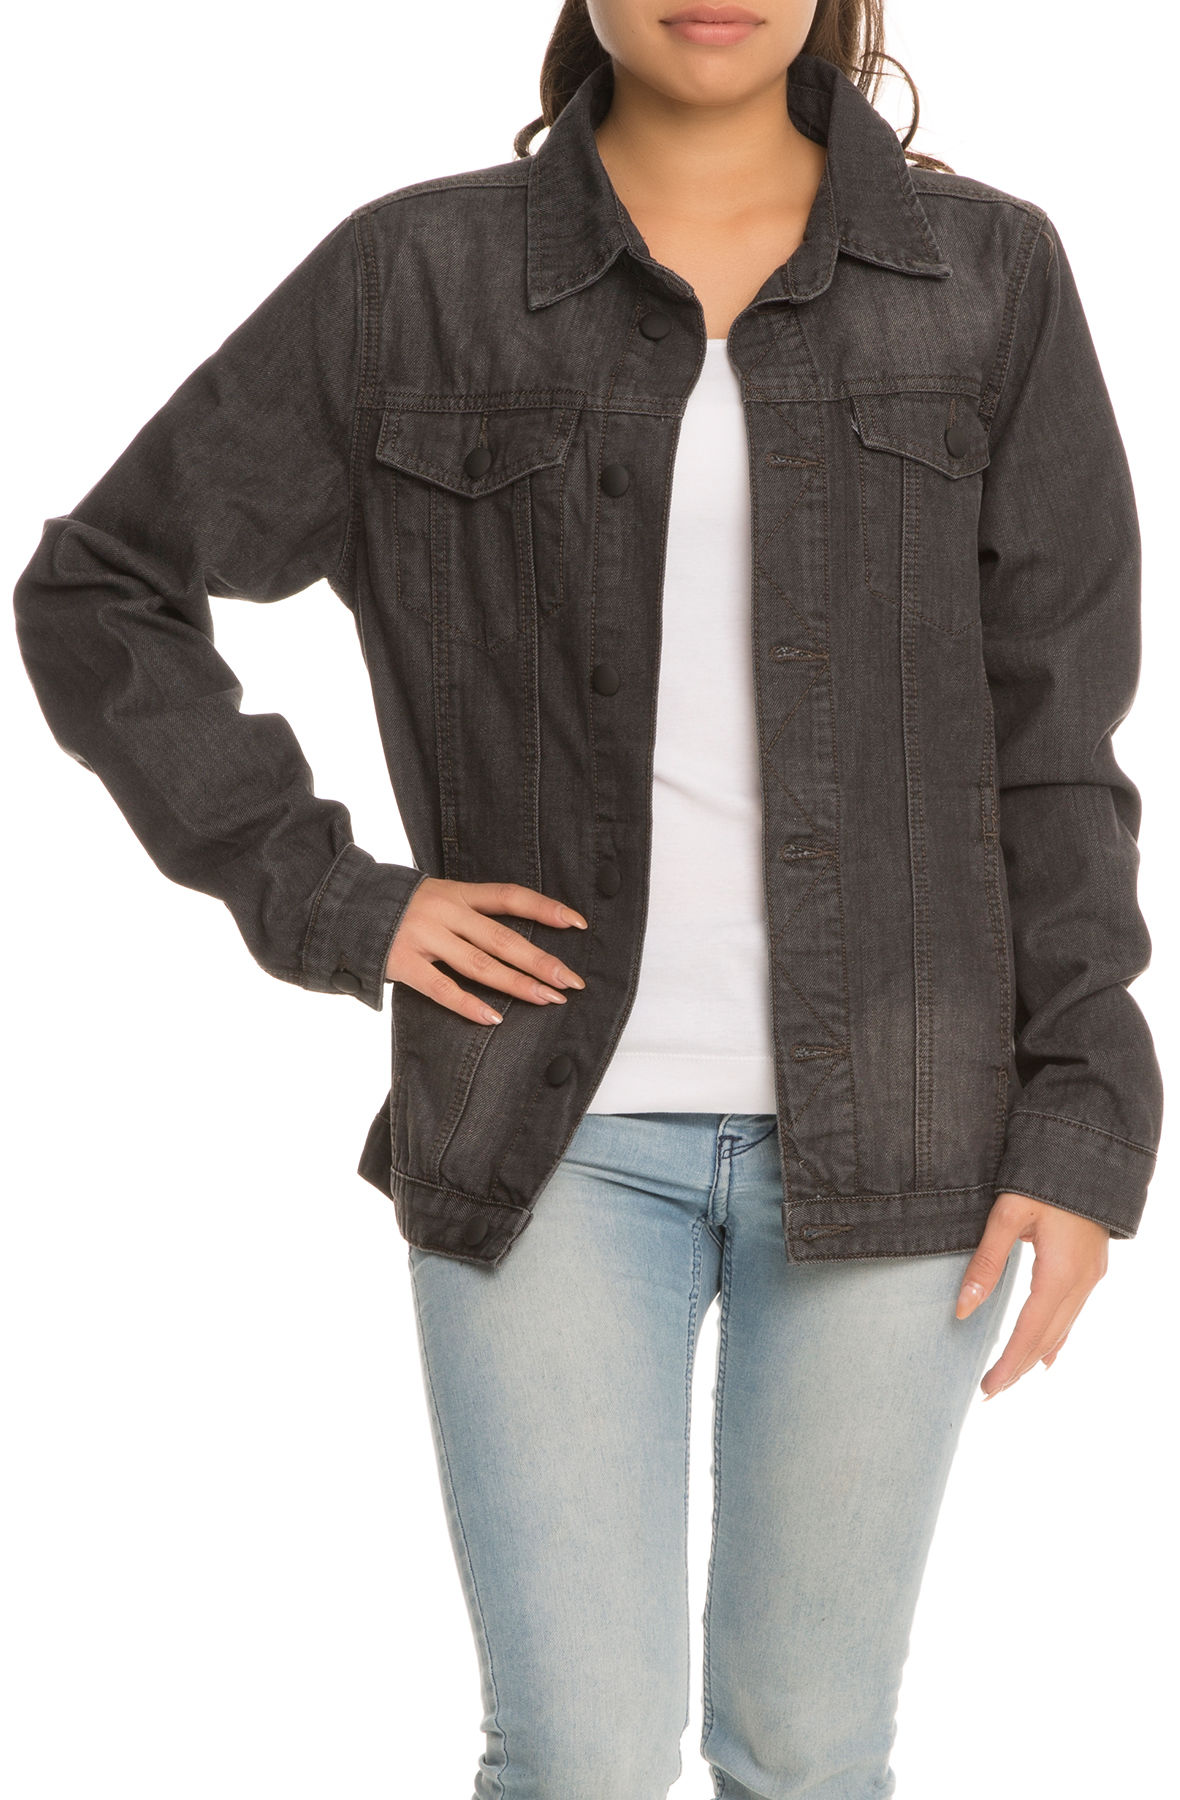 Image of The Tripled Womens Bleached Jean Jacket in Black